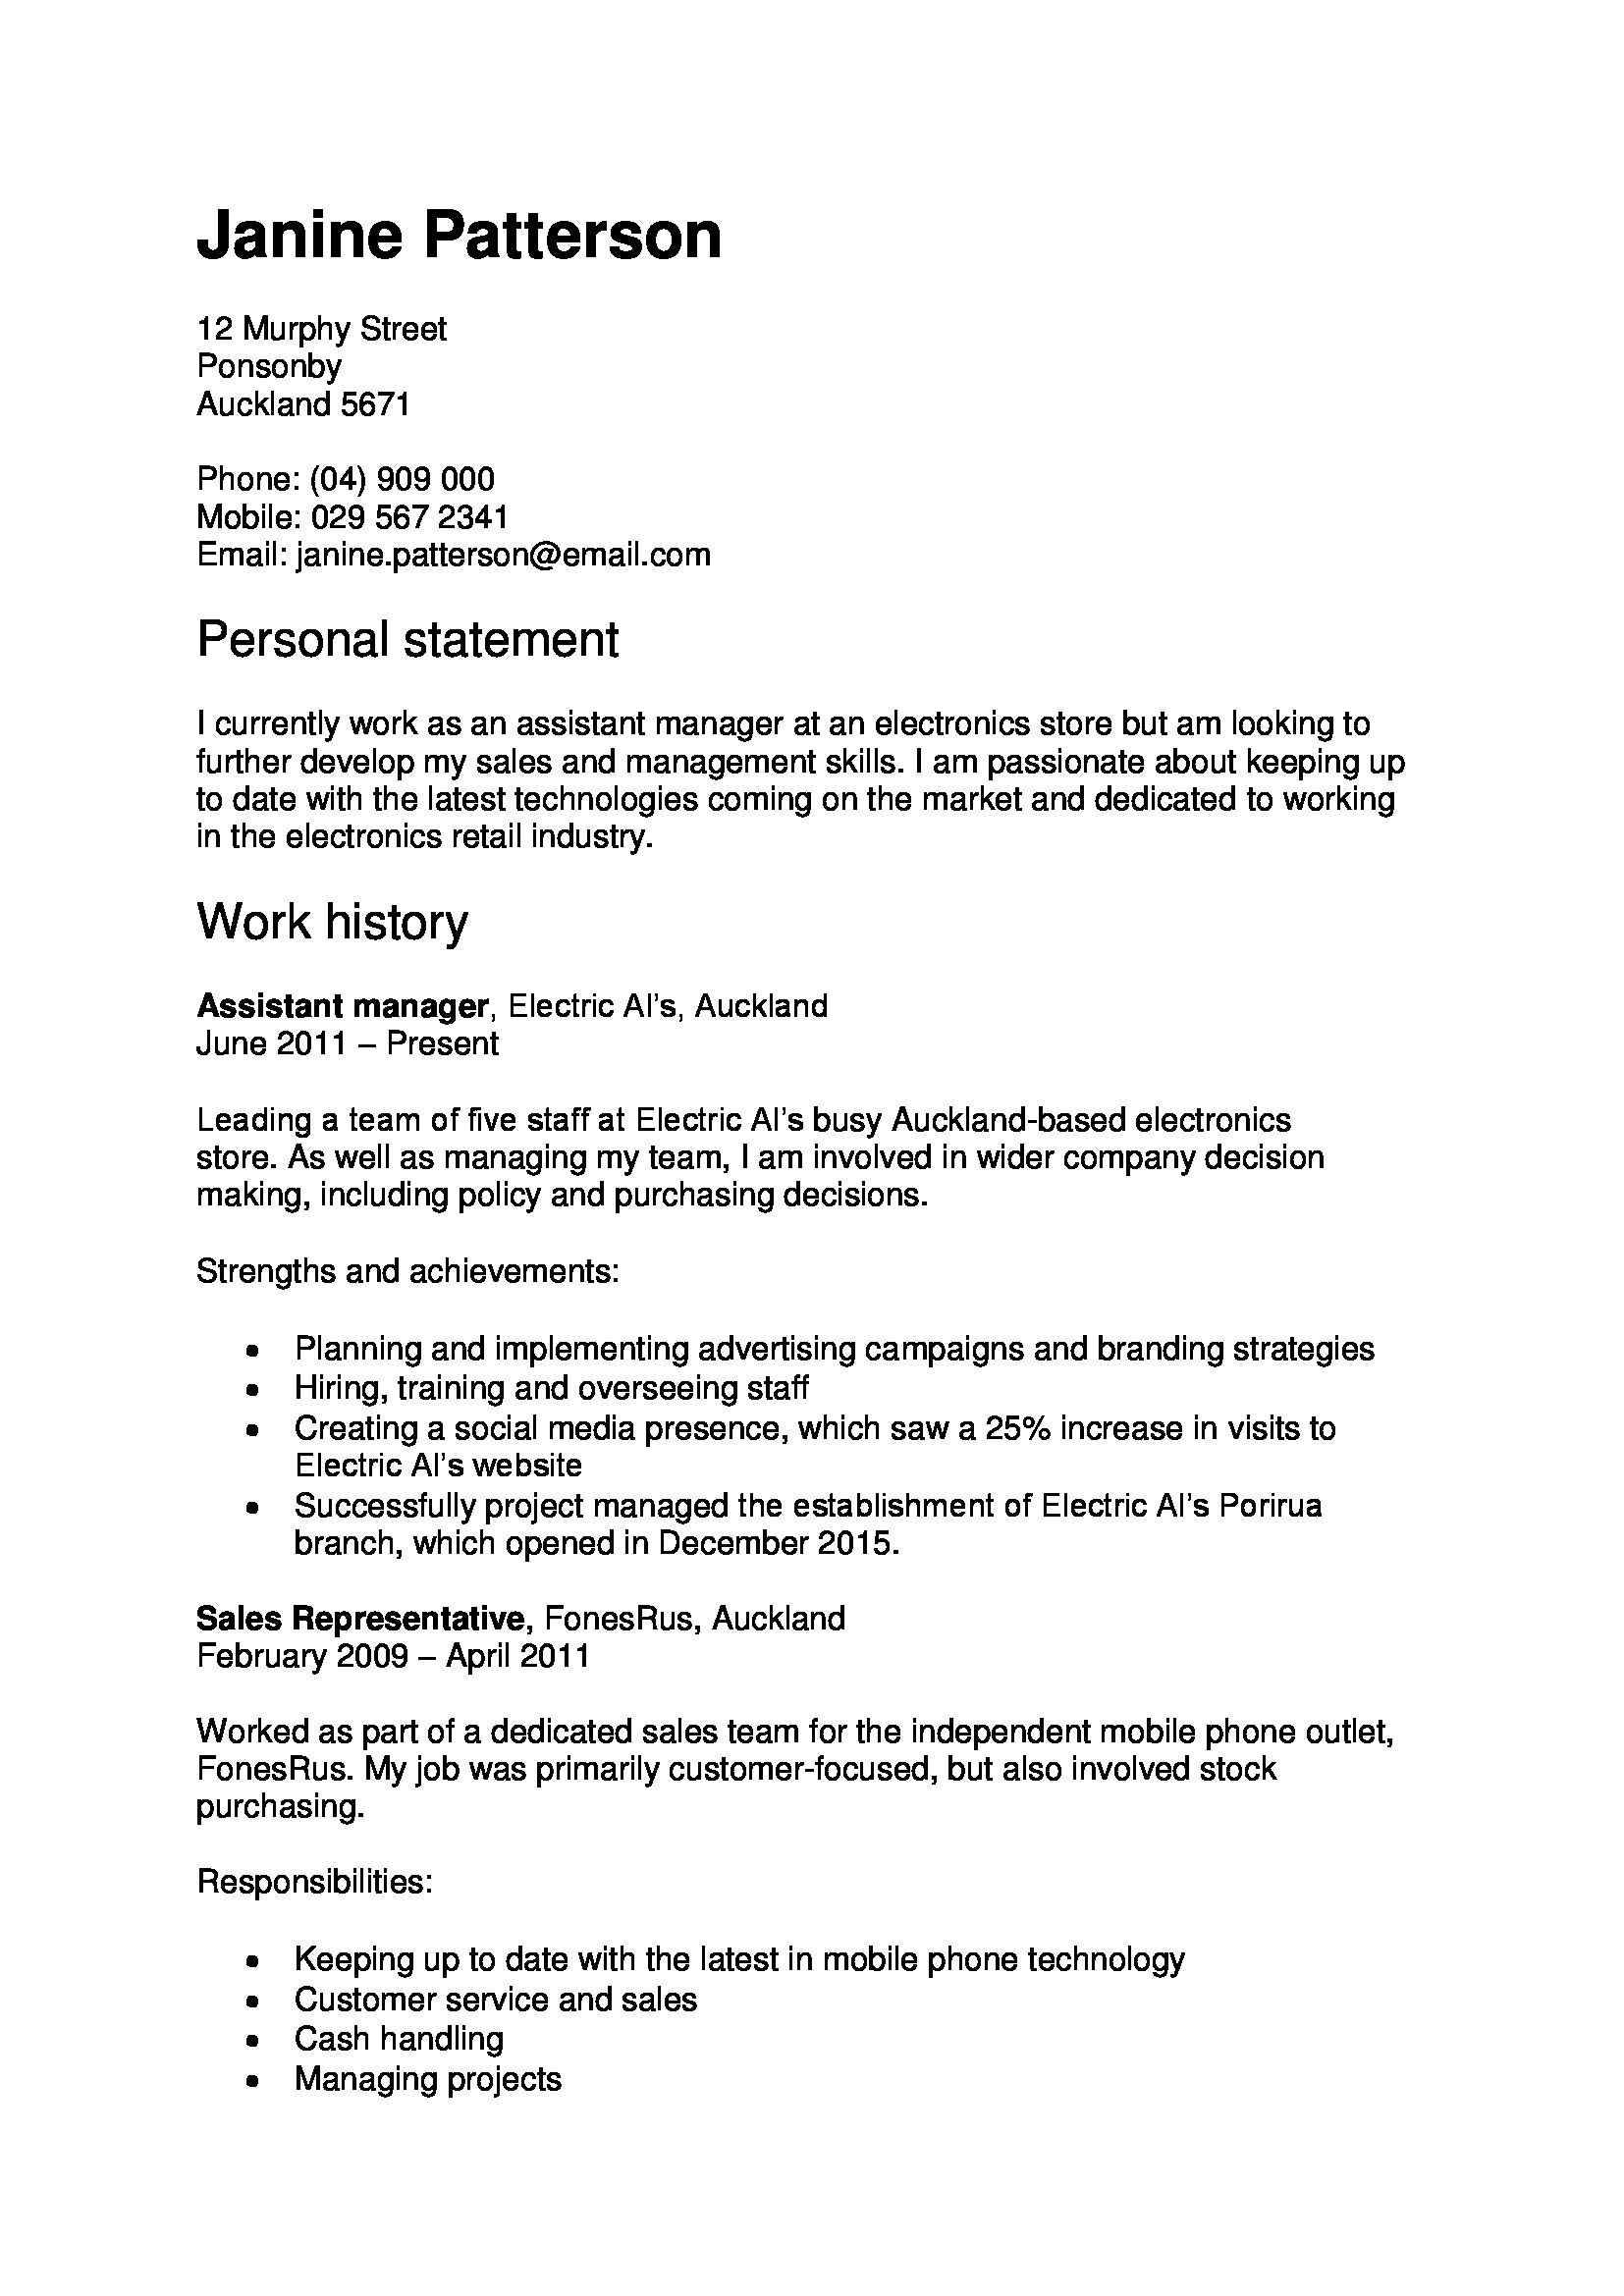 Cv Template New Zealand (With images) Teaching resume